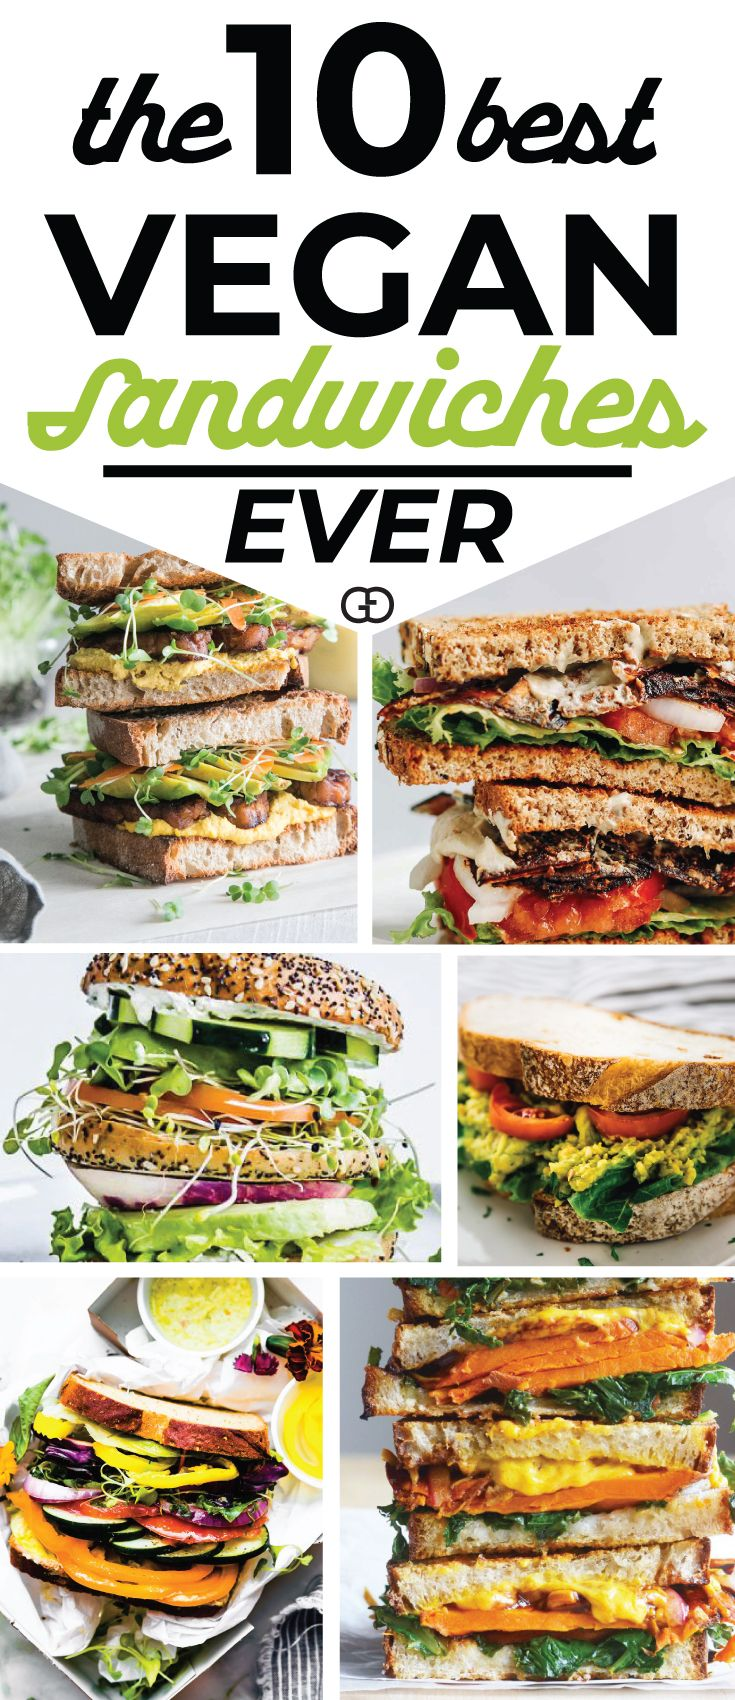 10 Easy Vegan Sandwiches Perfect For Your Awesome Lunch Box images